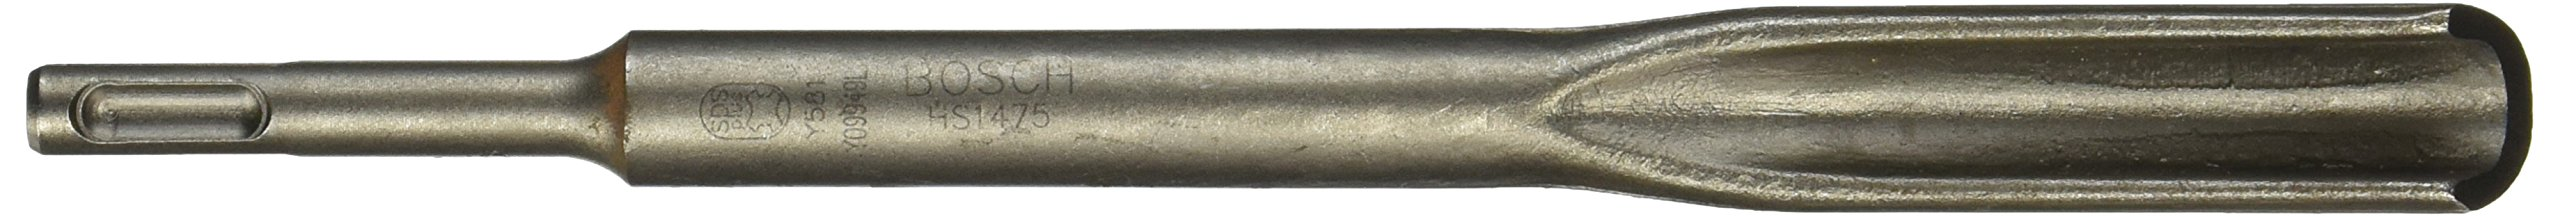 Bosch HS1475 10 In. Gouging Chisel SDS-plus Bulldog Hammer Steel